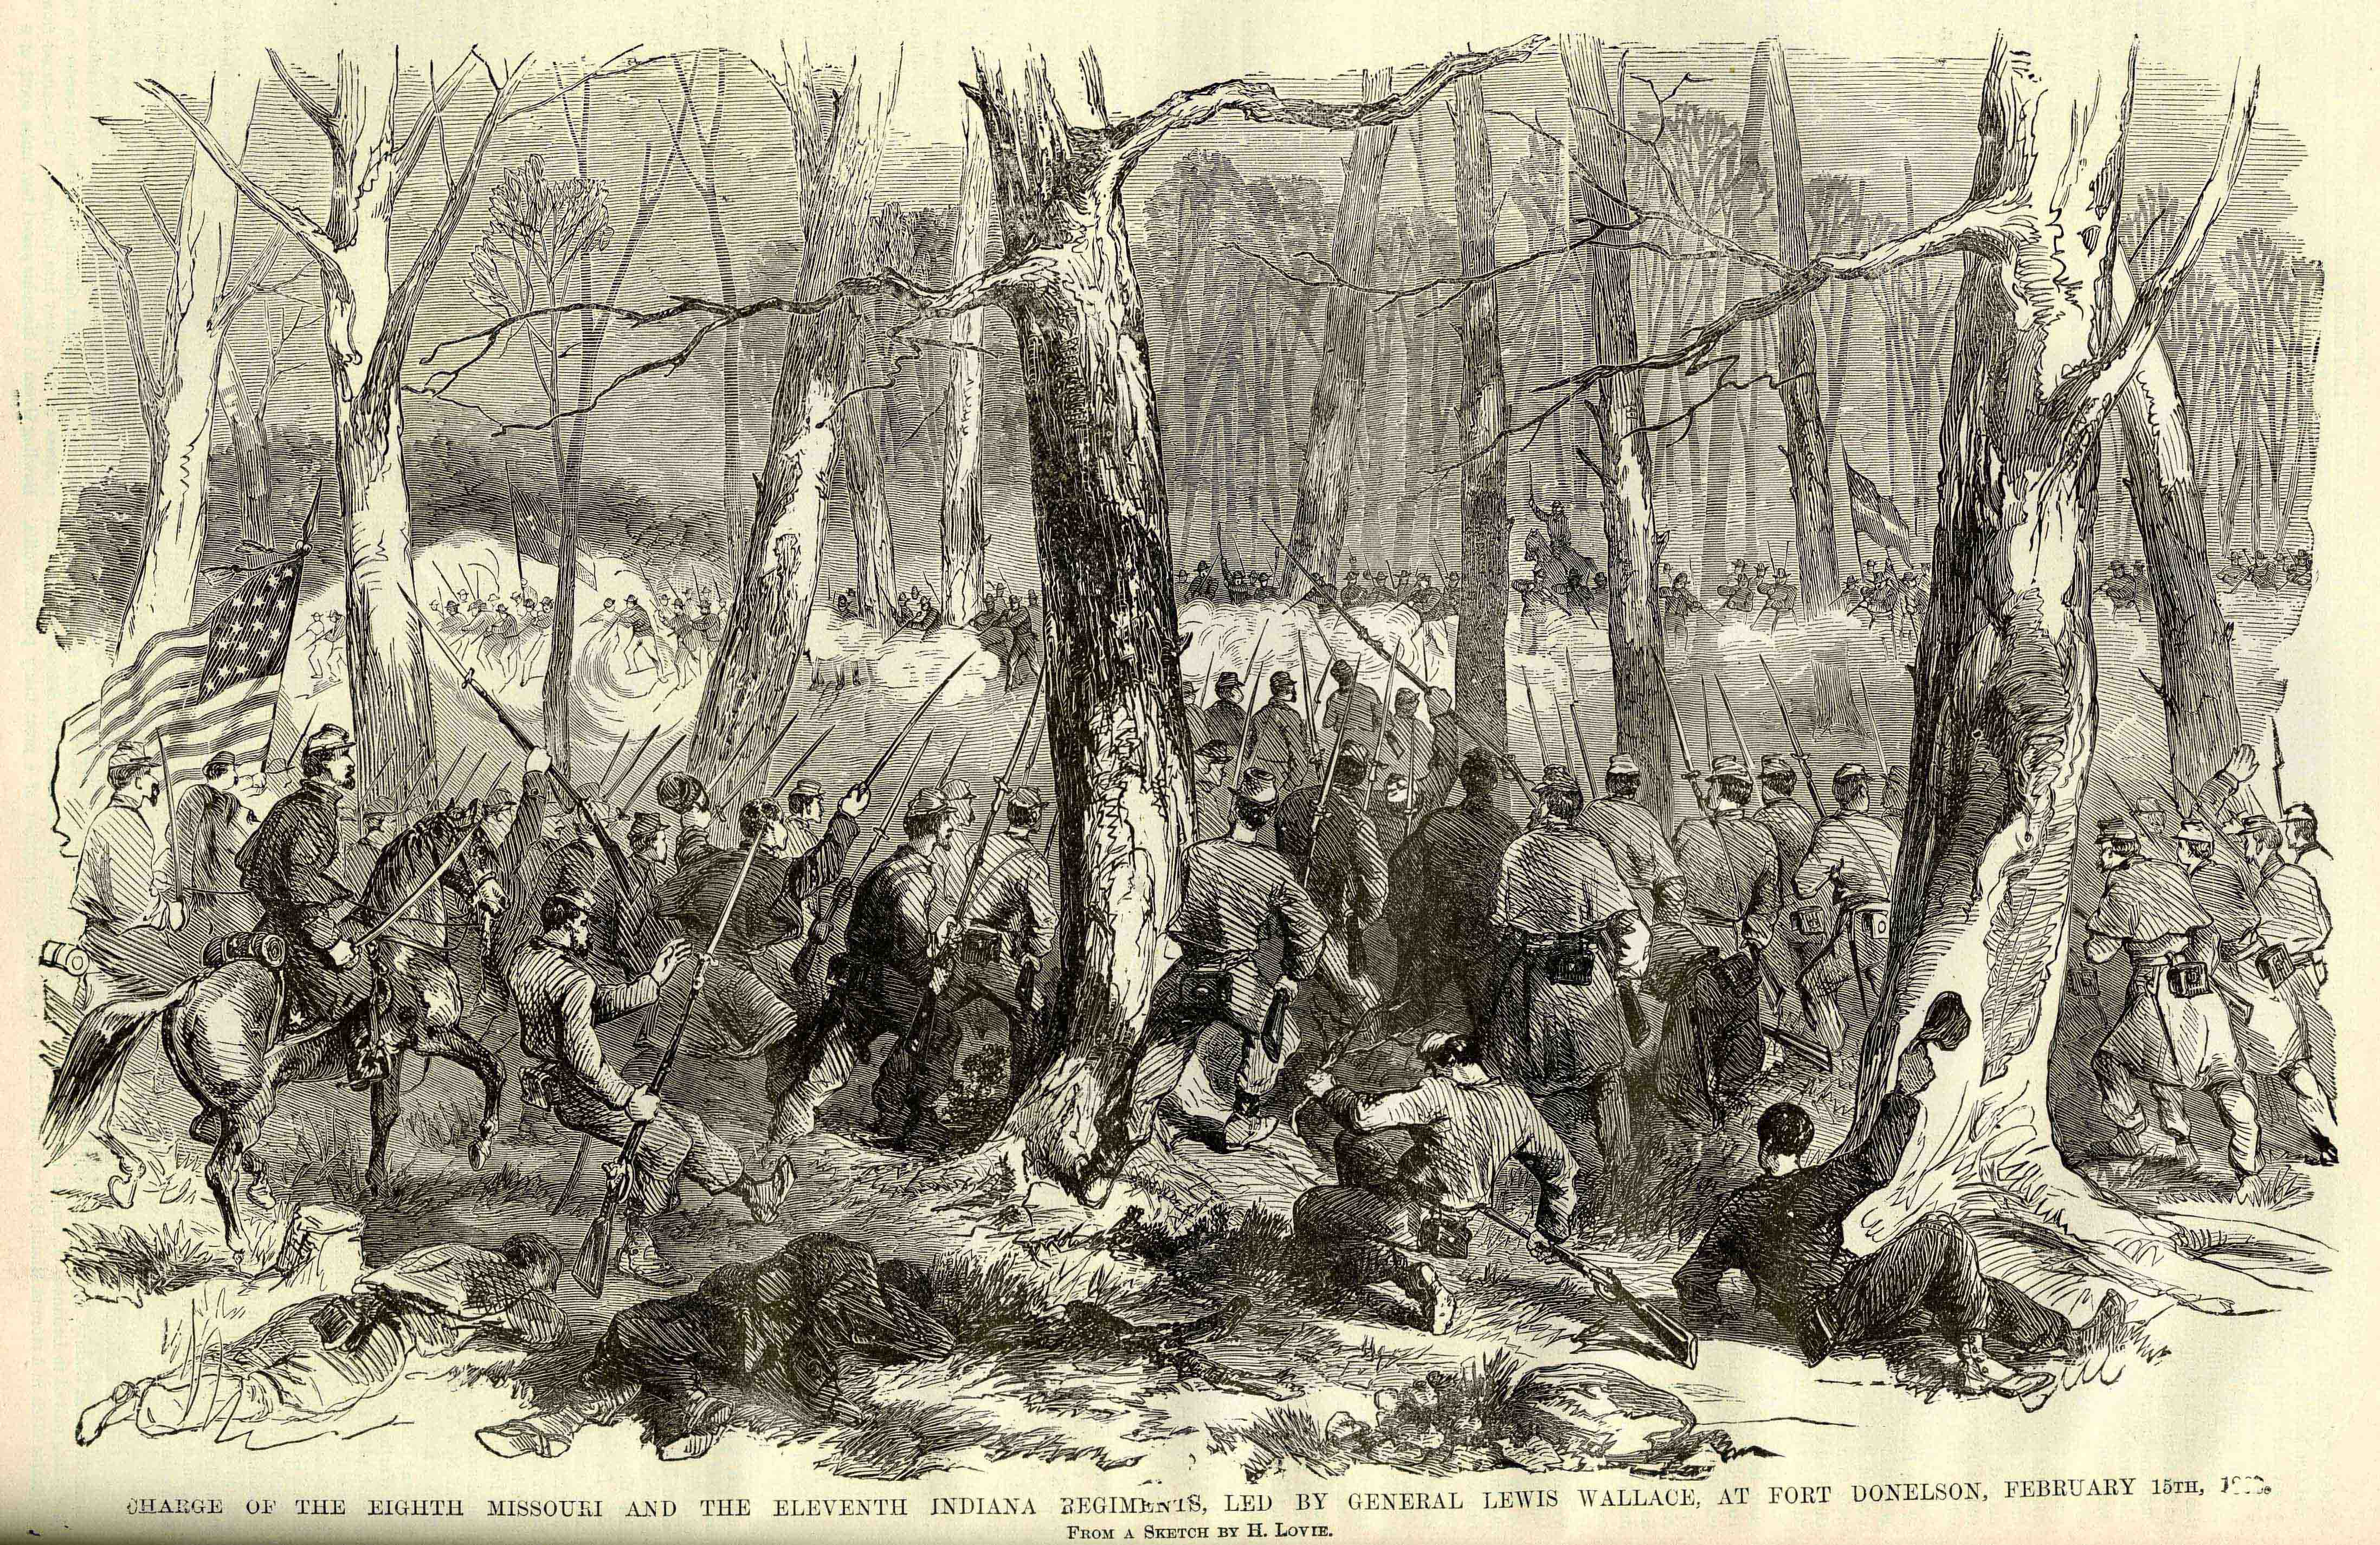 Lew Wallace S Charge At The Battle Of Fort Donelson From The Soldier In Our Civil War 6